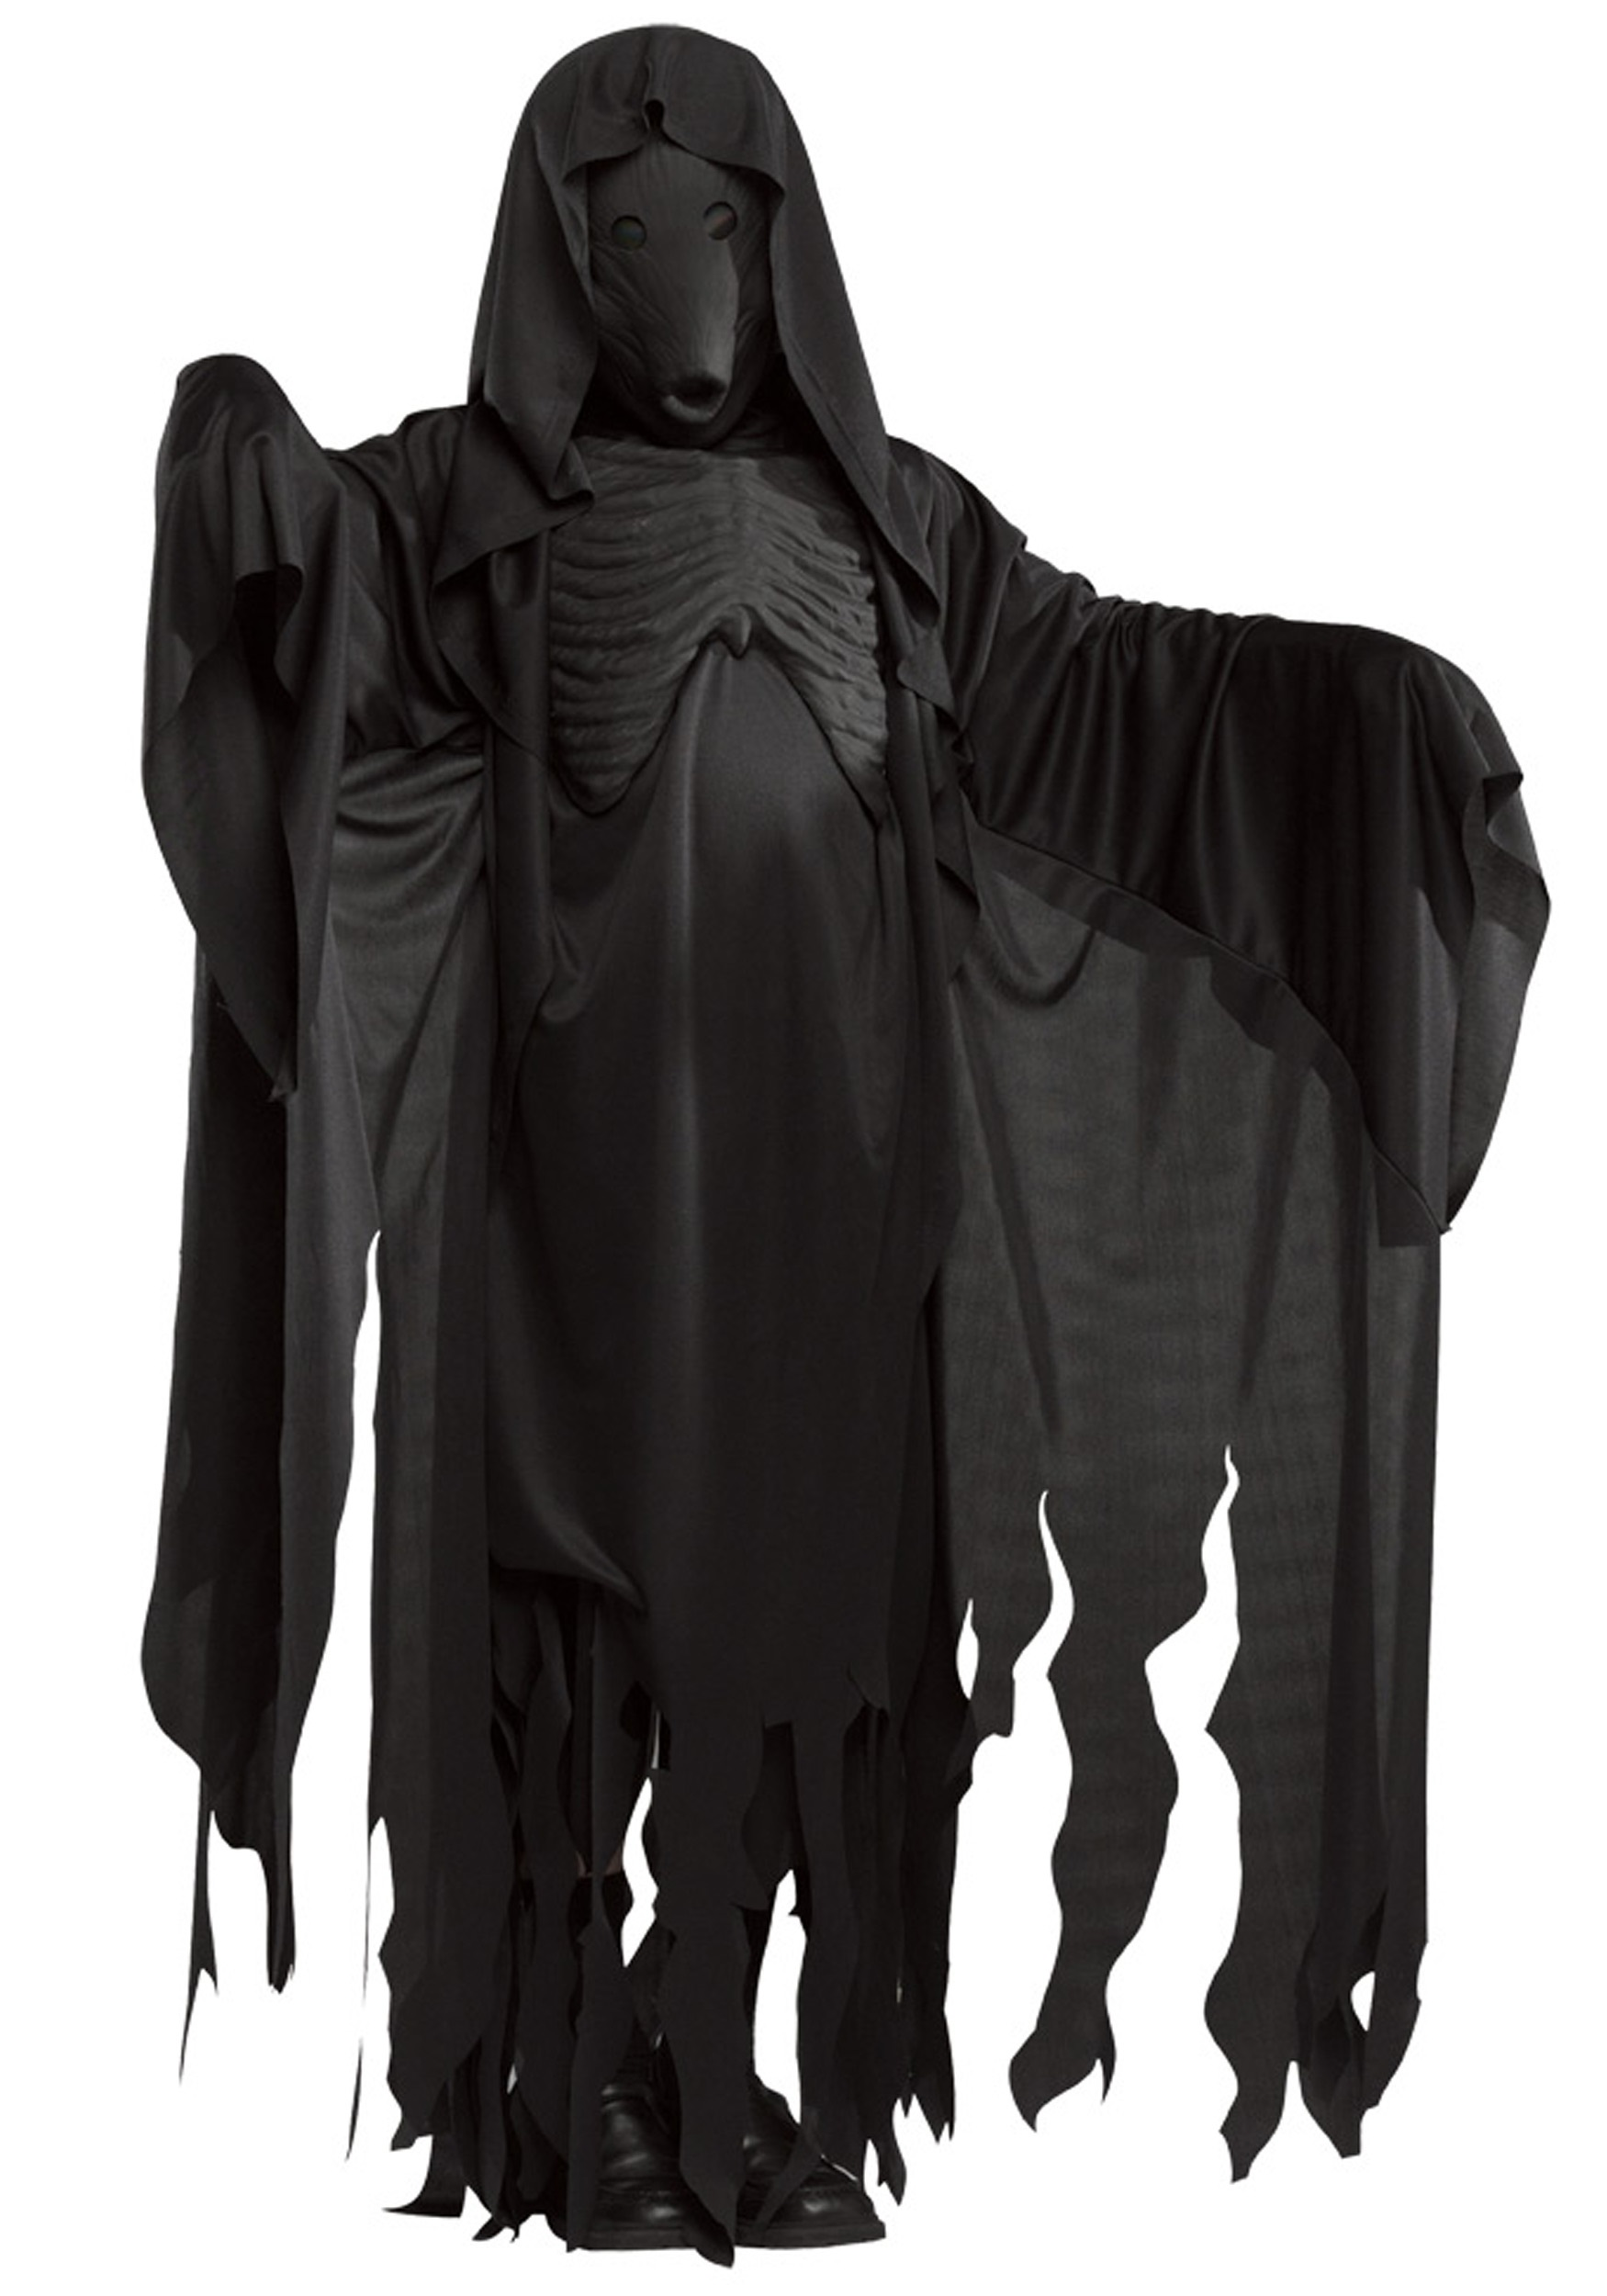 Dementor Adult Costume